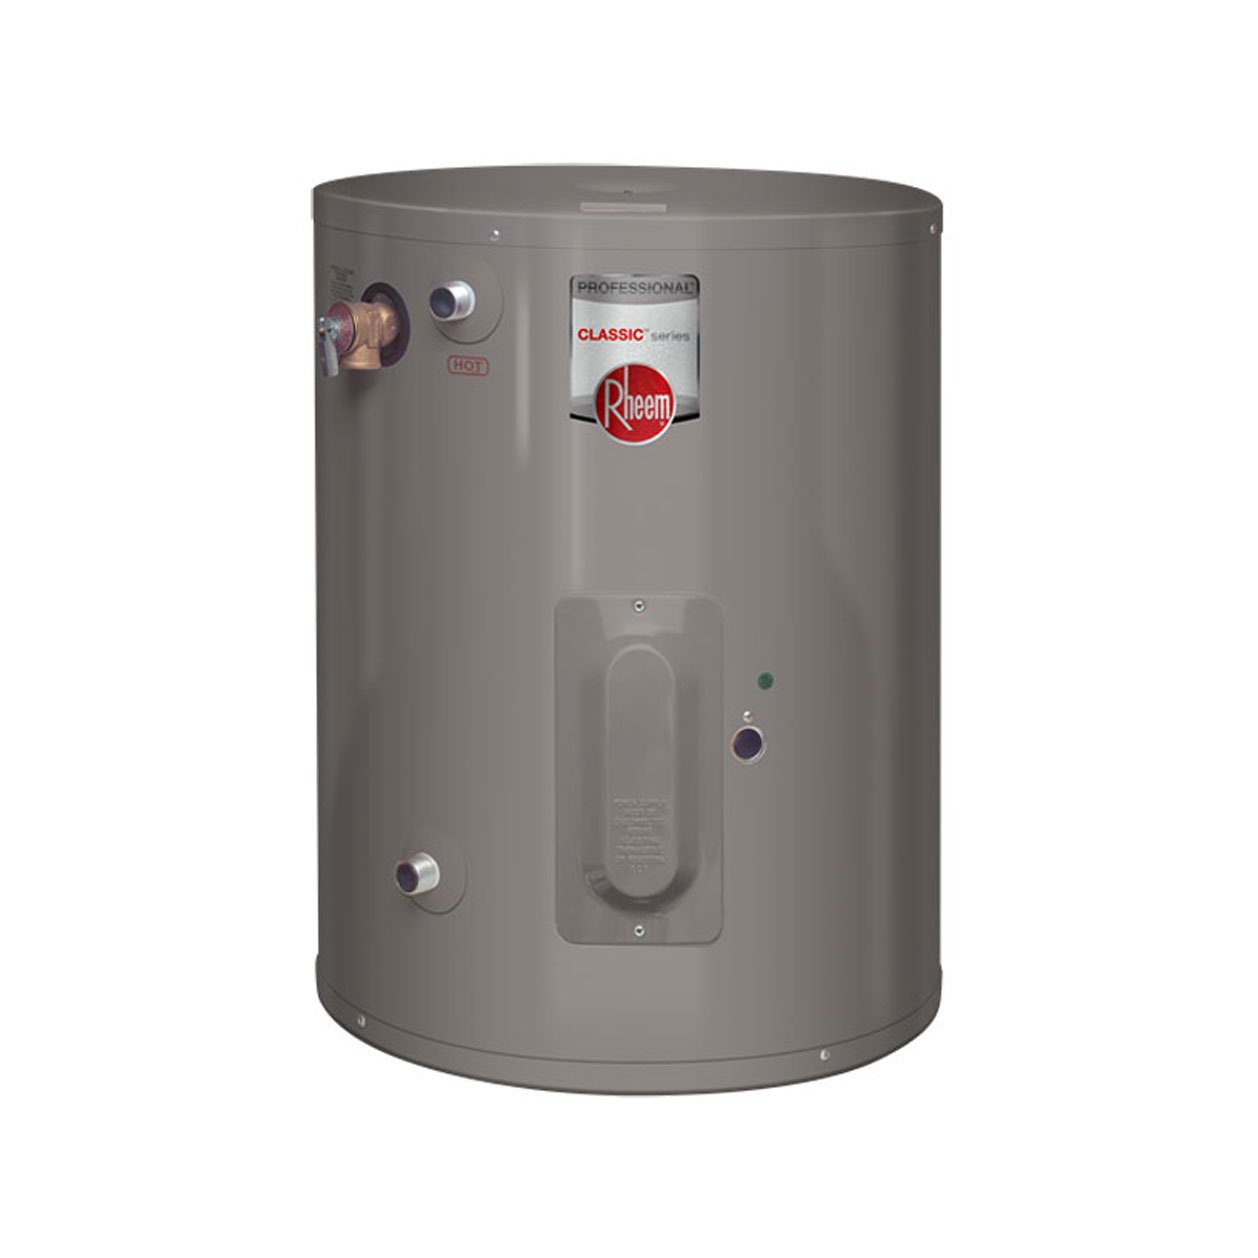 Rheem PROE20 1 RH POU Professional Classic Residential 20 Gallon Electric Point-of-Use Water Heater